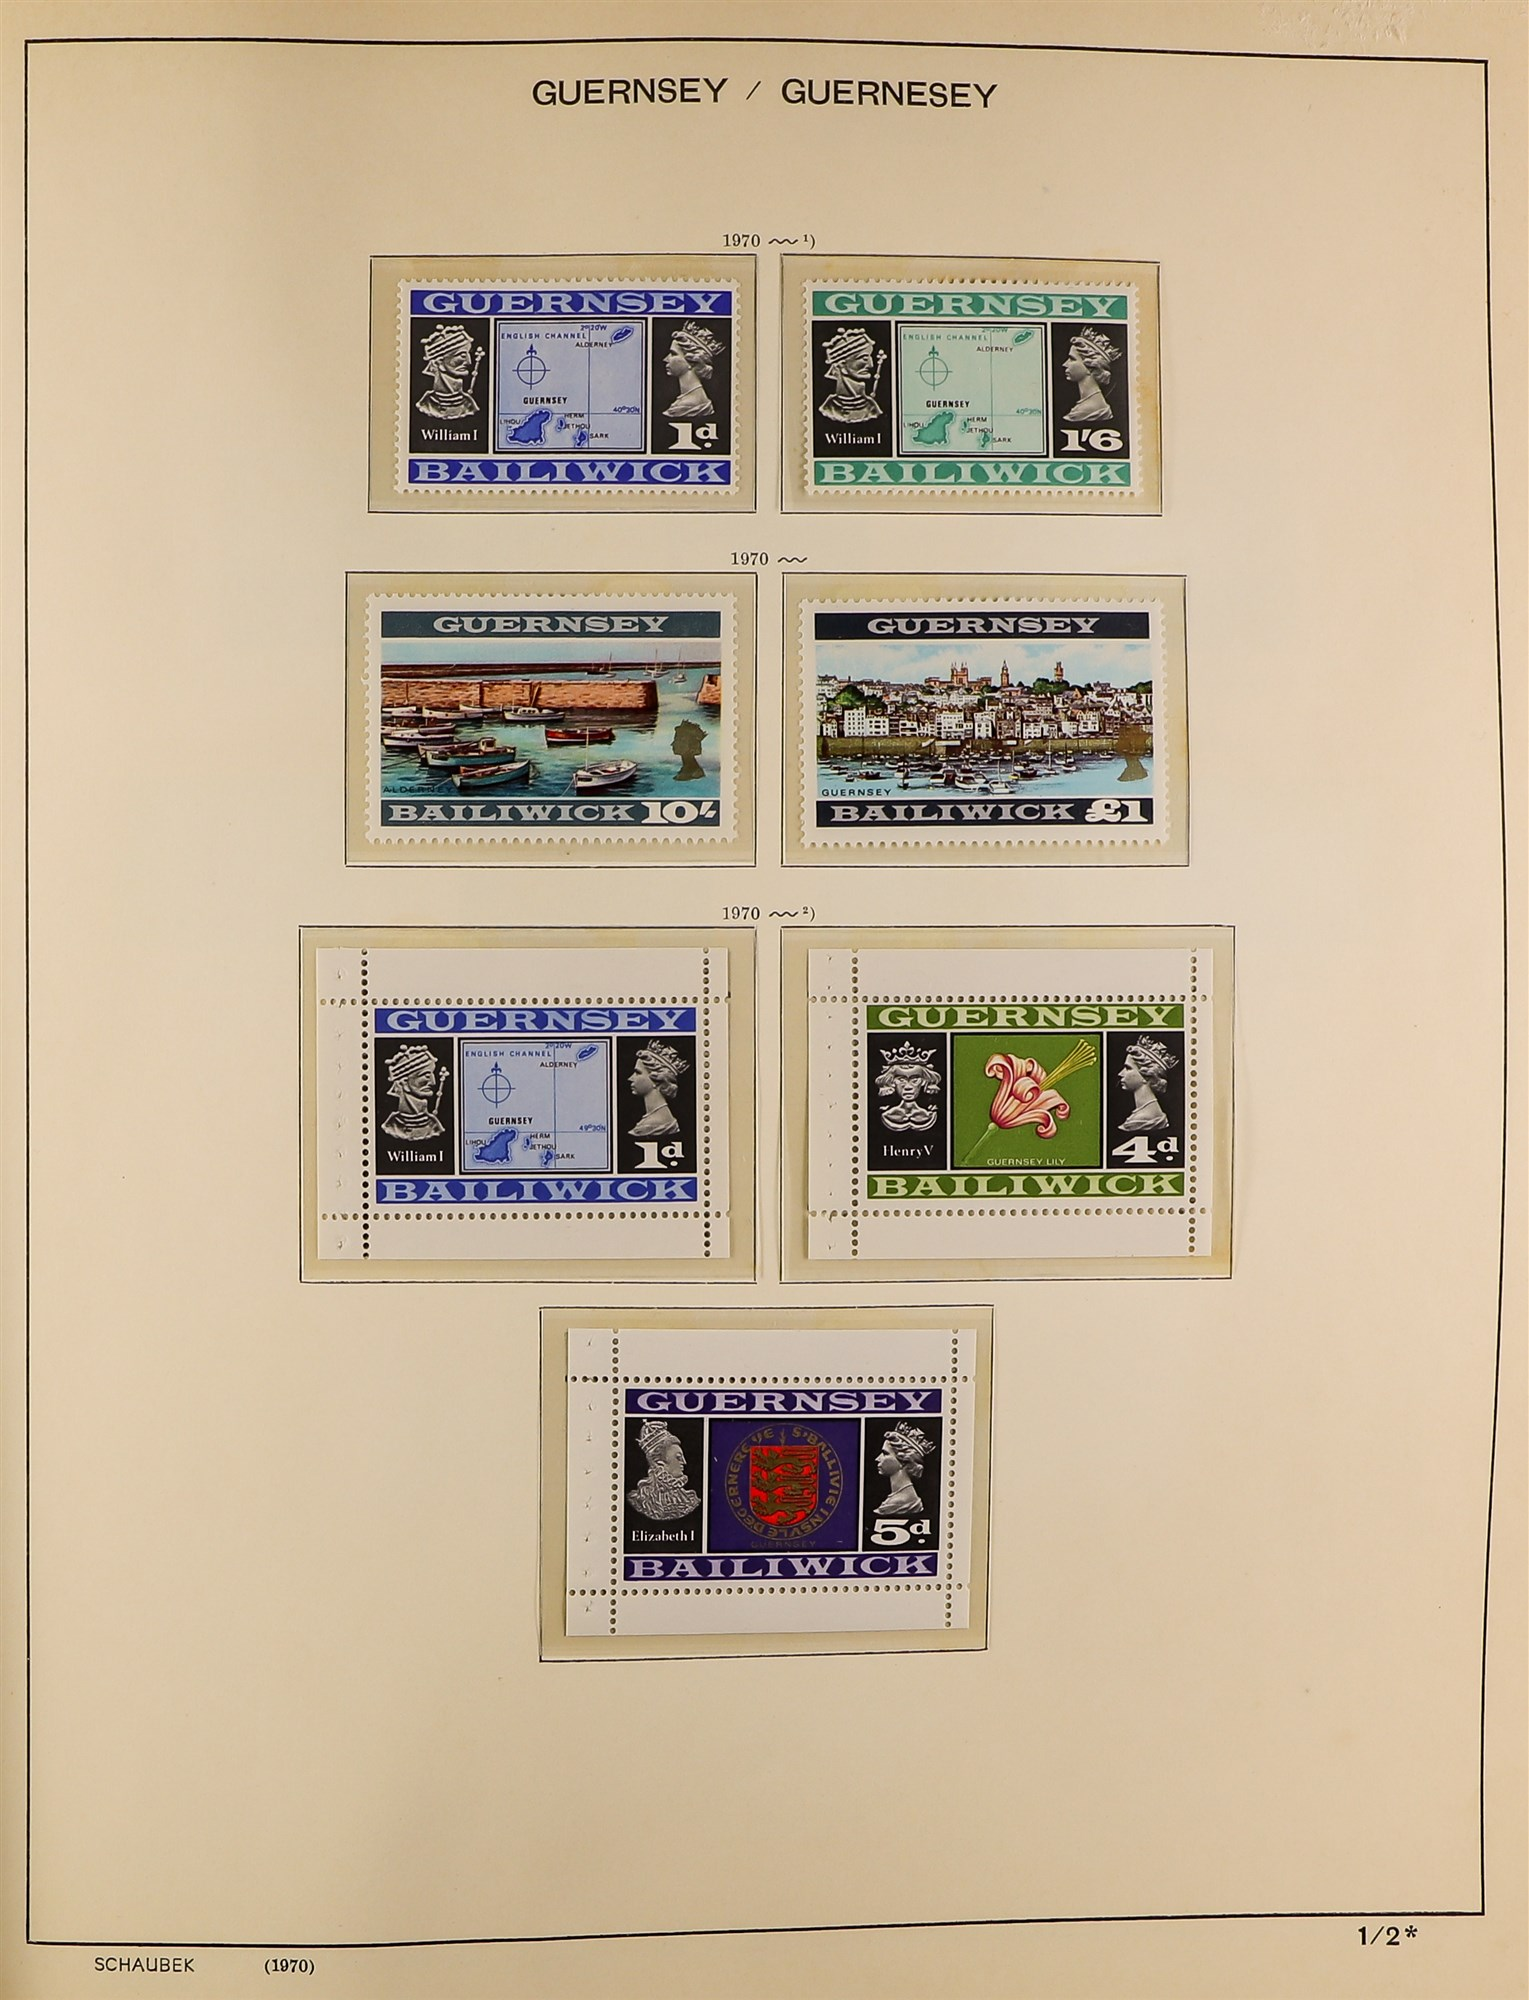 GB.ISLANDS CHANNEL ISLANDS AND ISLE OF MAN COLLECTIONS 1969-98 never hinged mint collections in